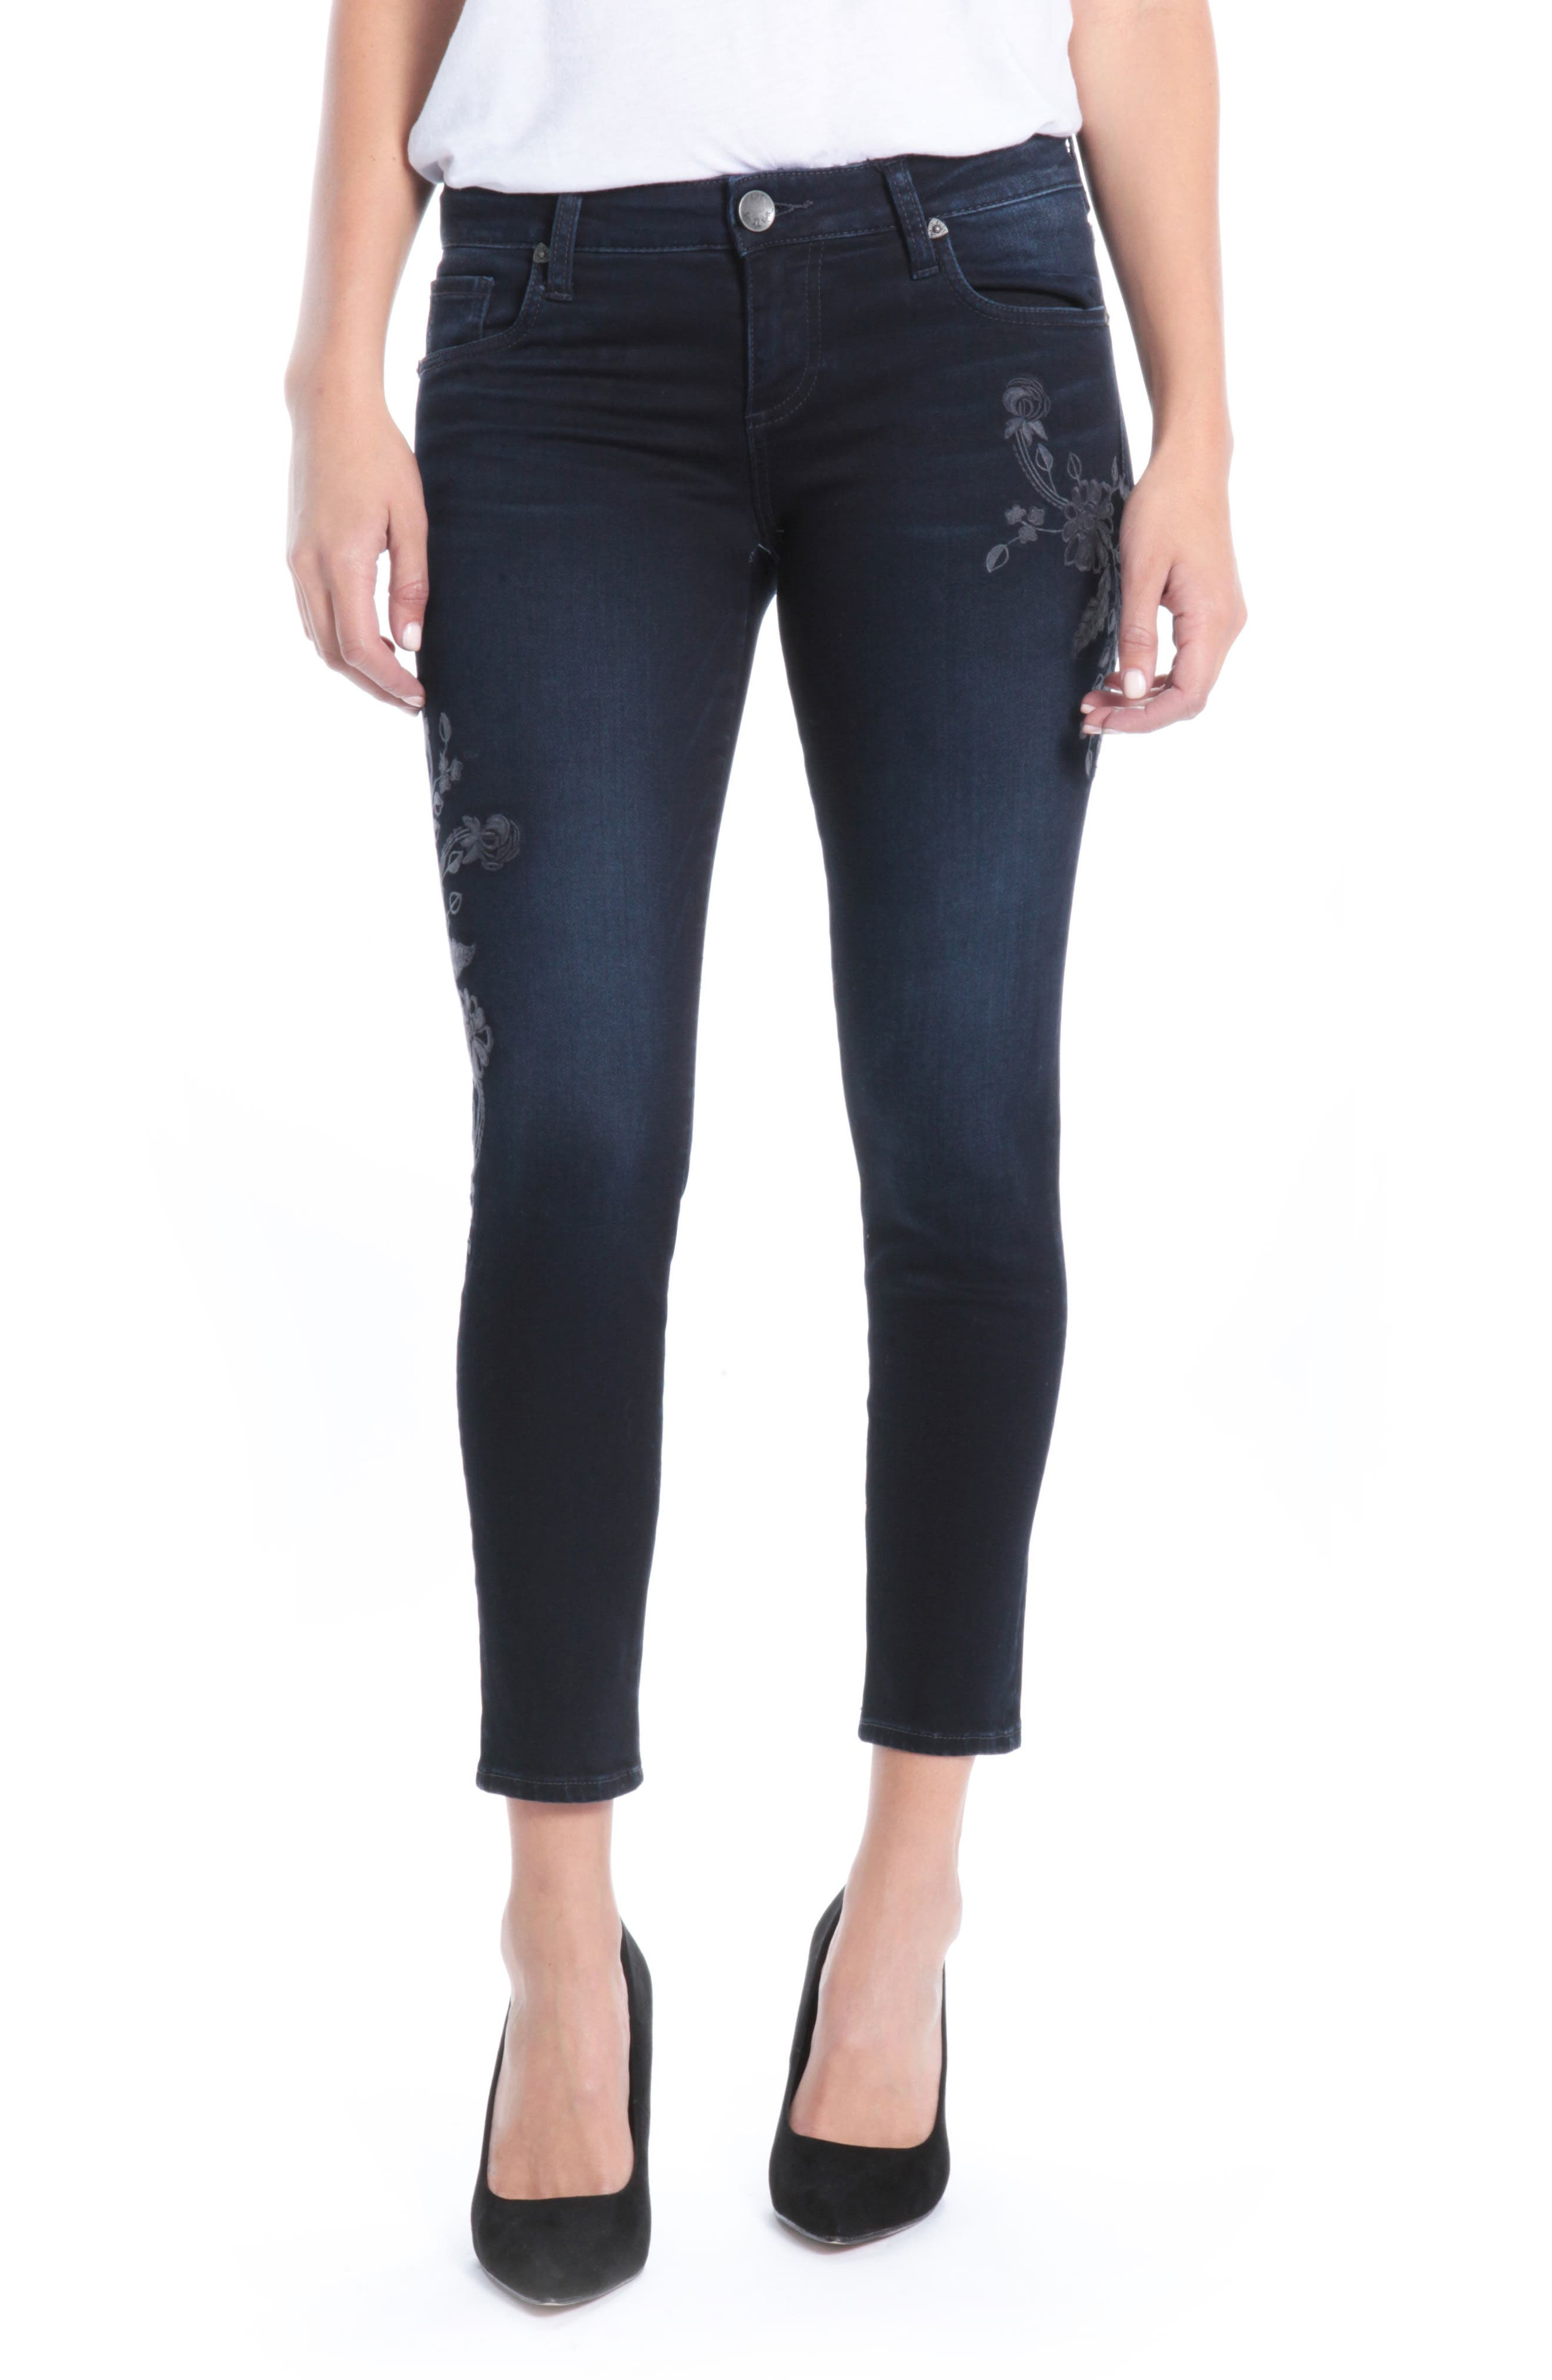 Main Image - Kut from the Kloth Donna Ankle Skinny Jeans (Modeled)